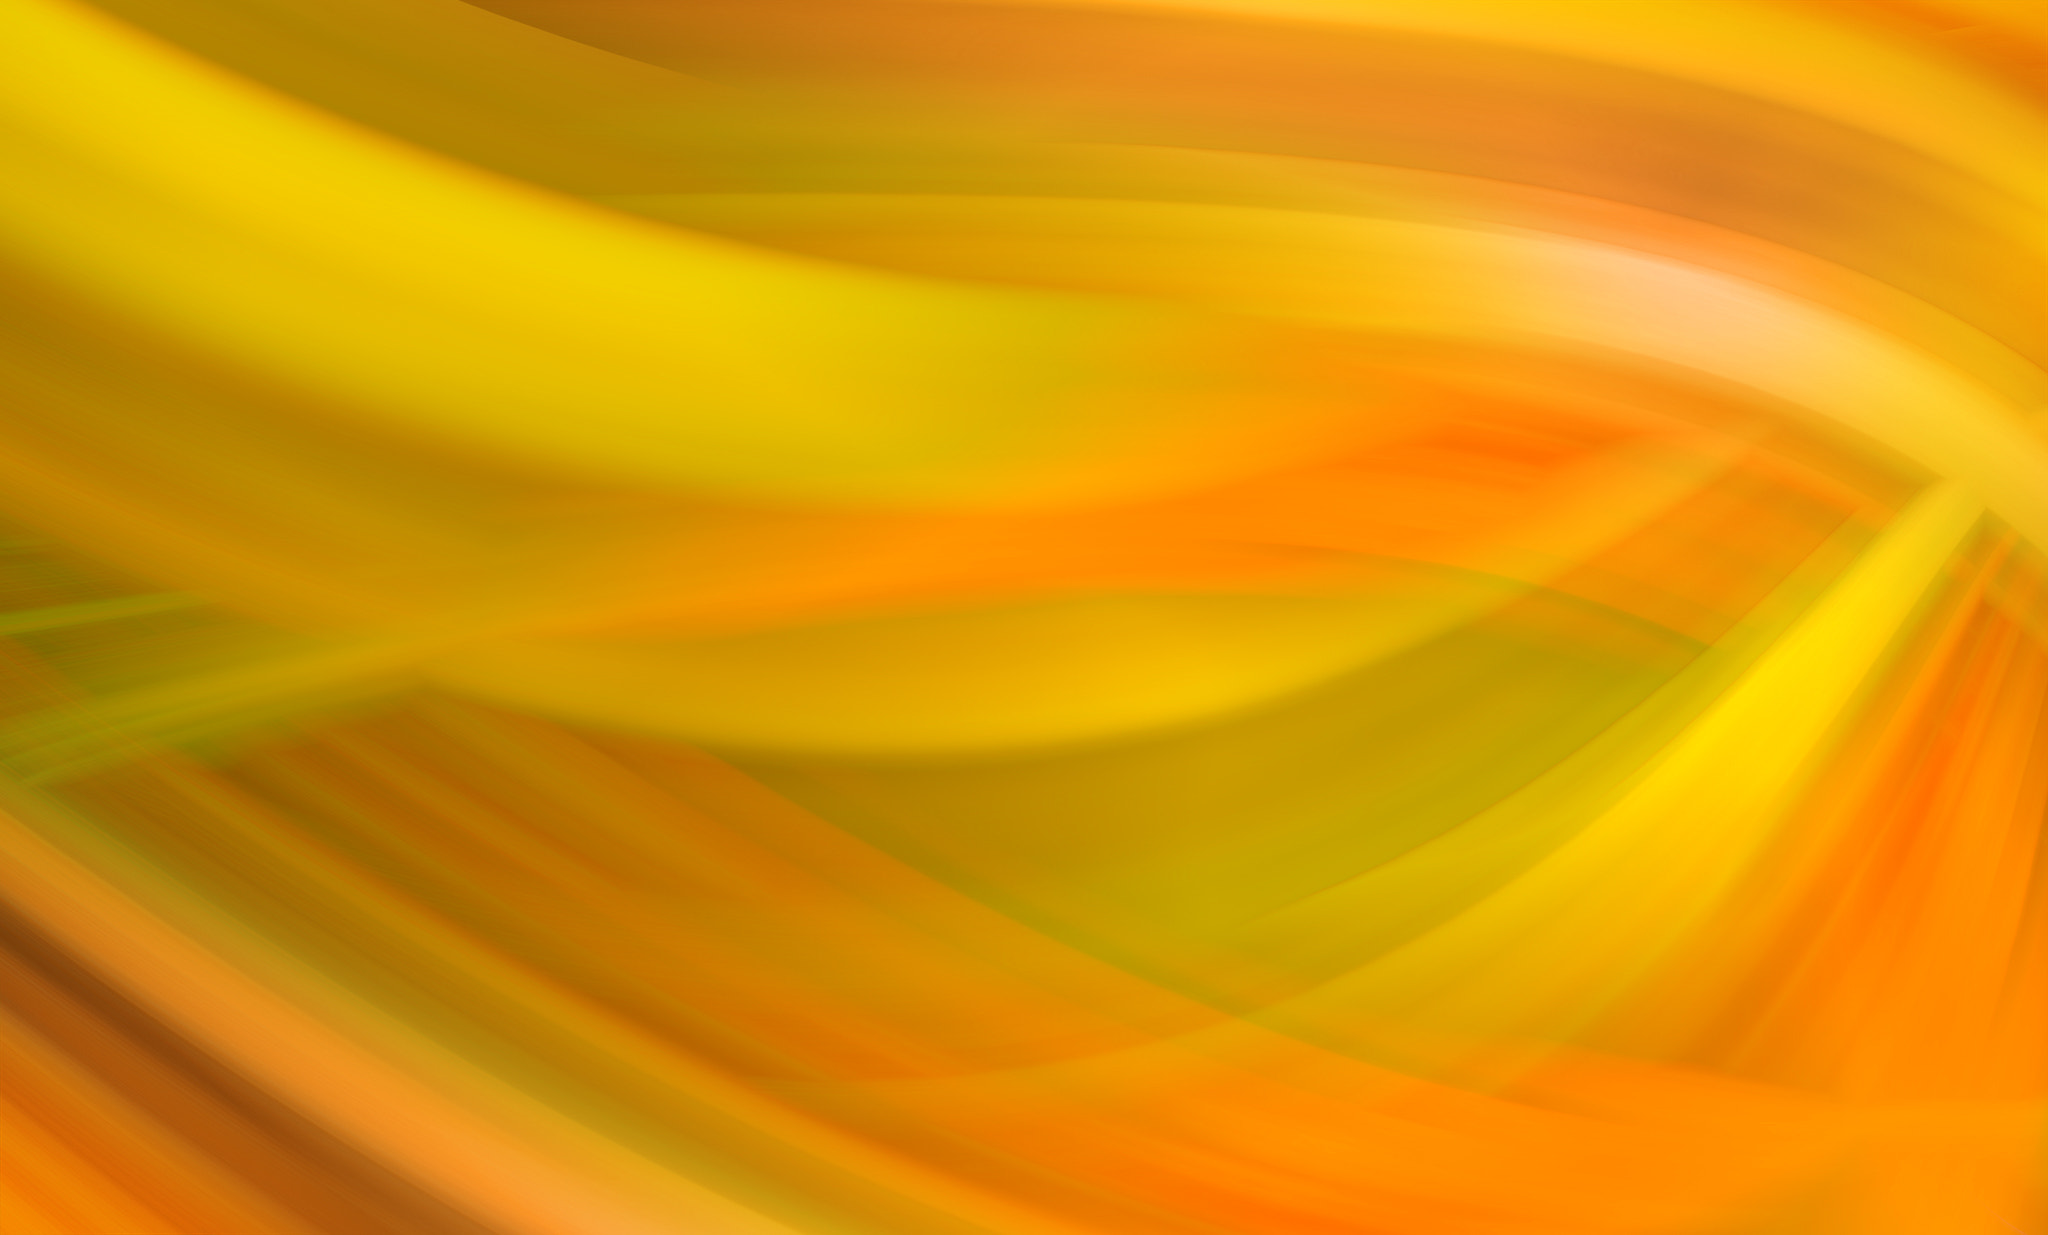 Photograph Orange and Lemon Fusion Abstract by Trevor  on 500px